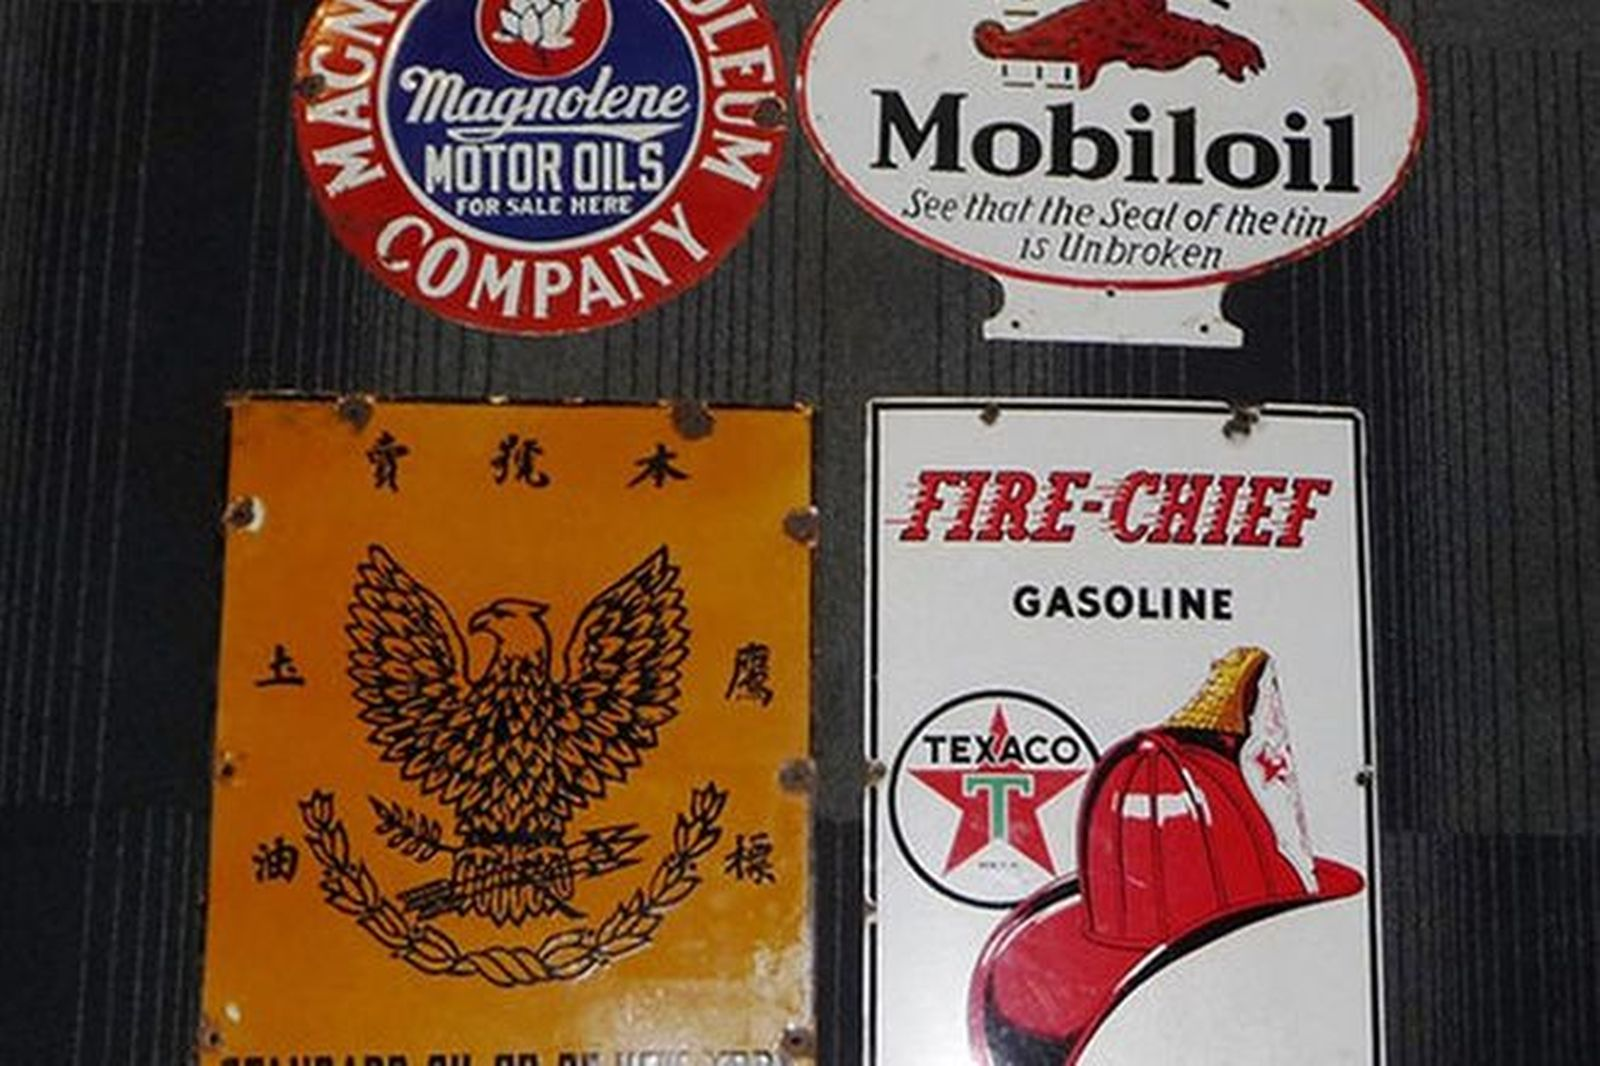 Enamel Signs x 4 - Standard Oil Fire-Chief Gargoyle & Magnolia